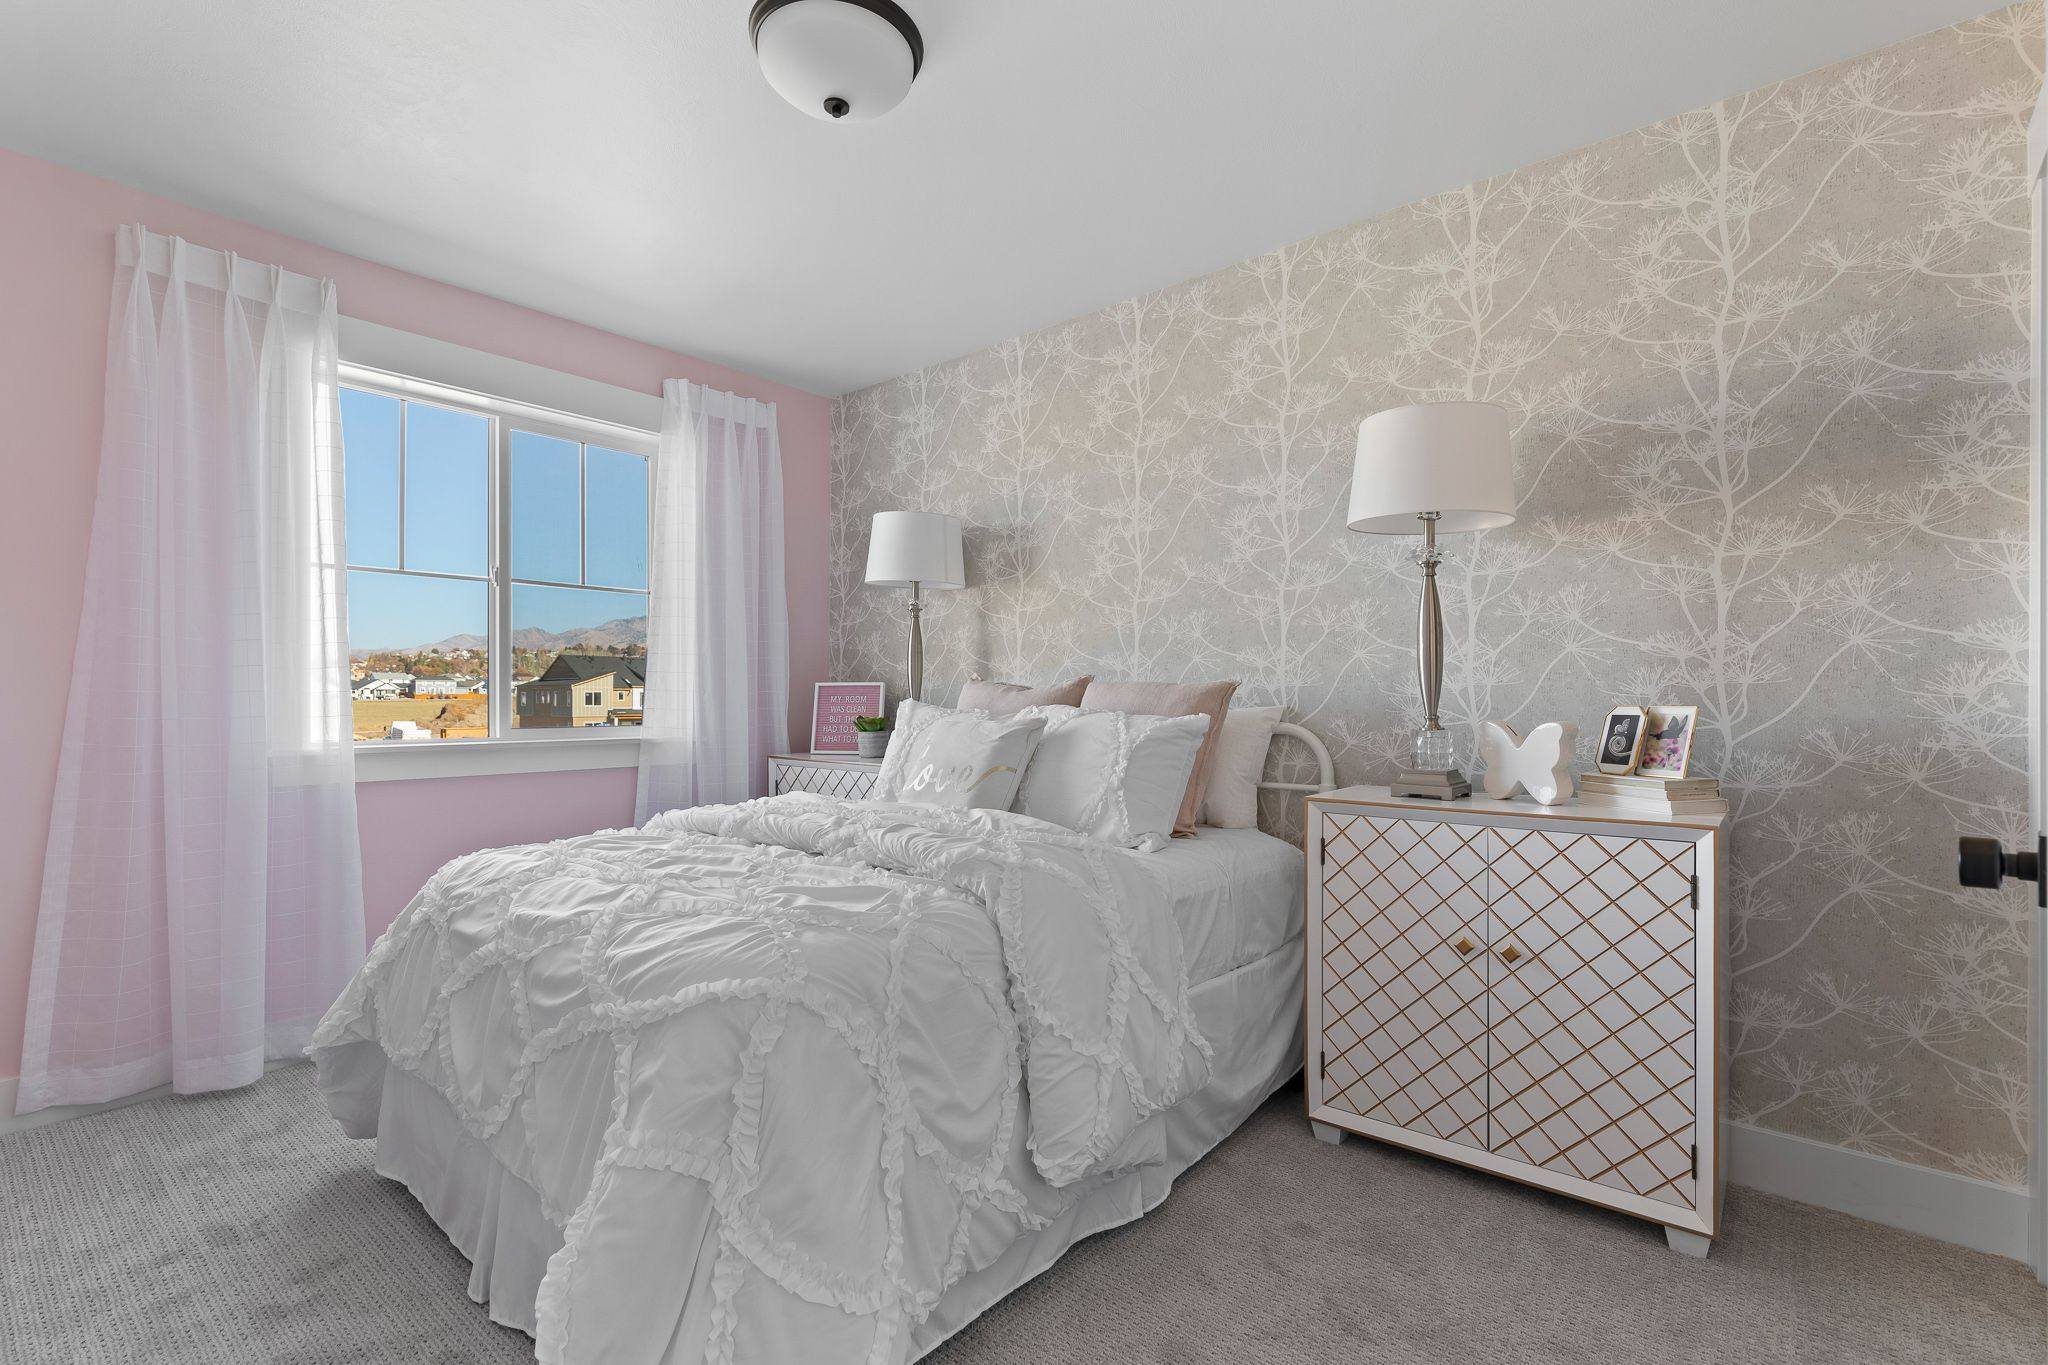 Bedroom featured in the Madison (Basement) By Visionary Homes in Logan, UT